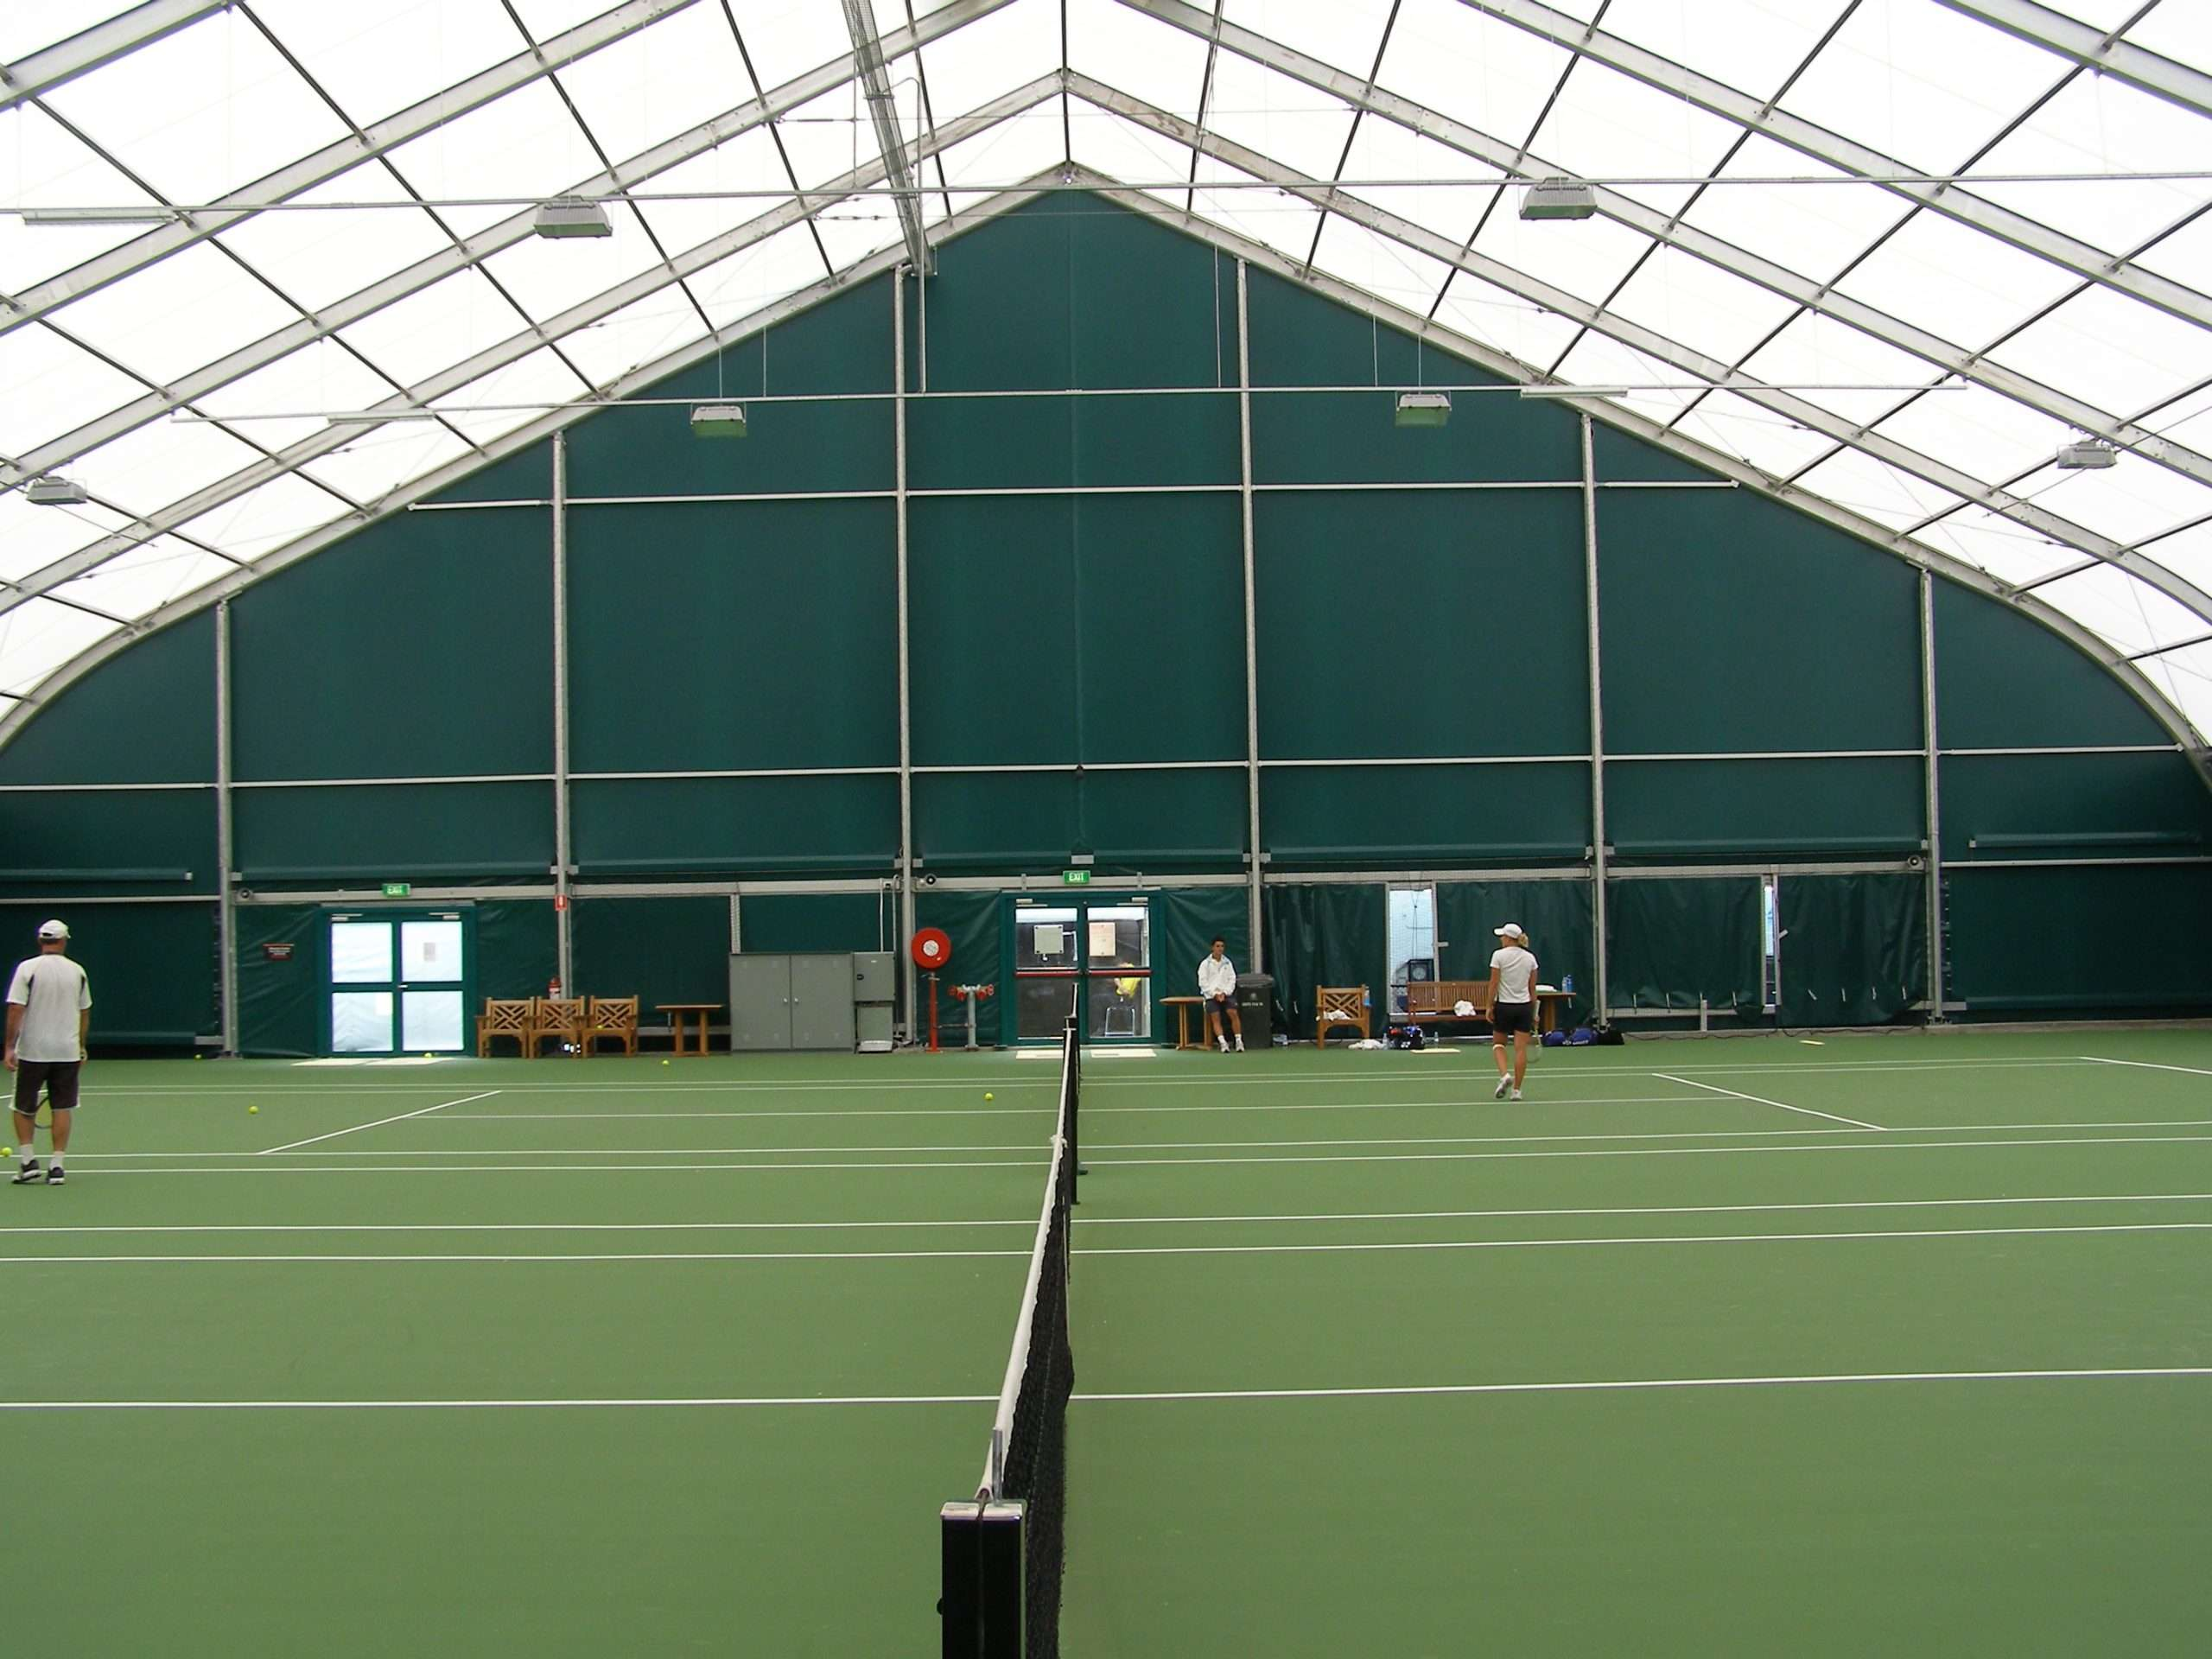 school sports facility tennis court covered by tension fabric buidling